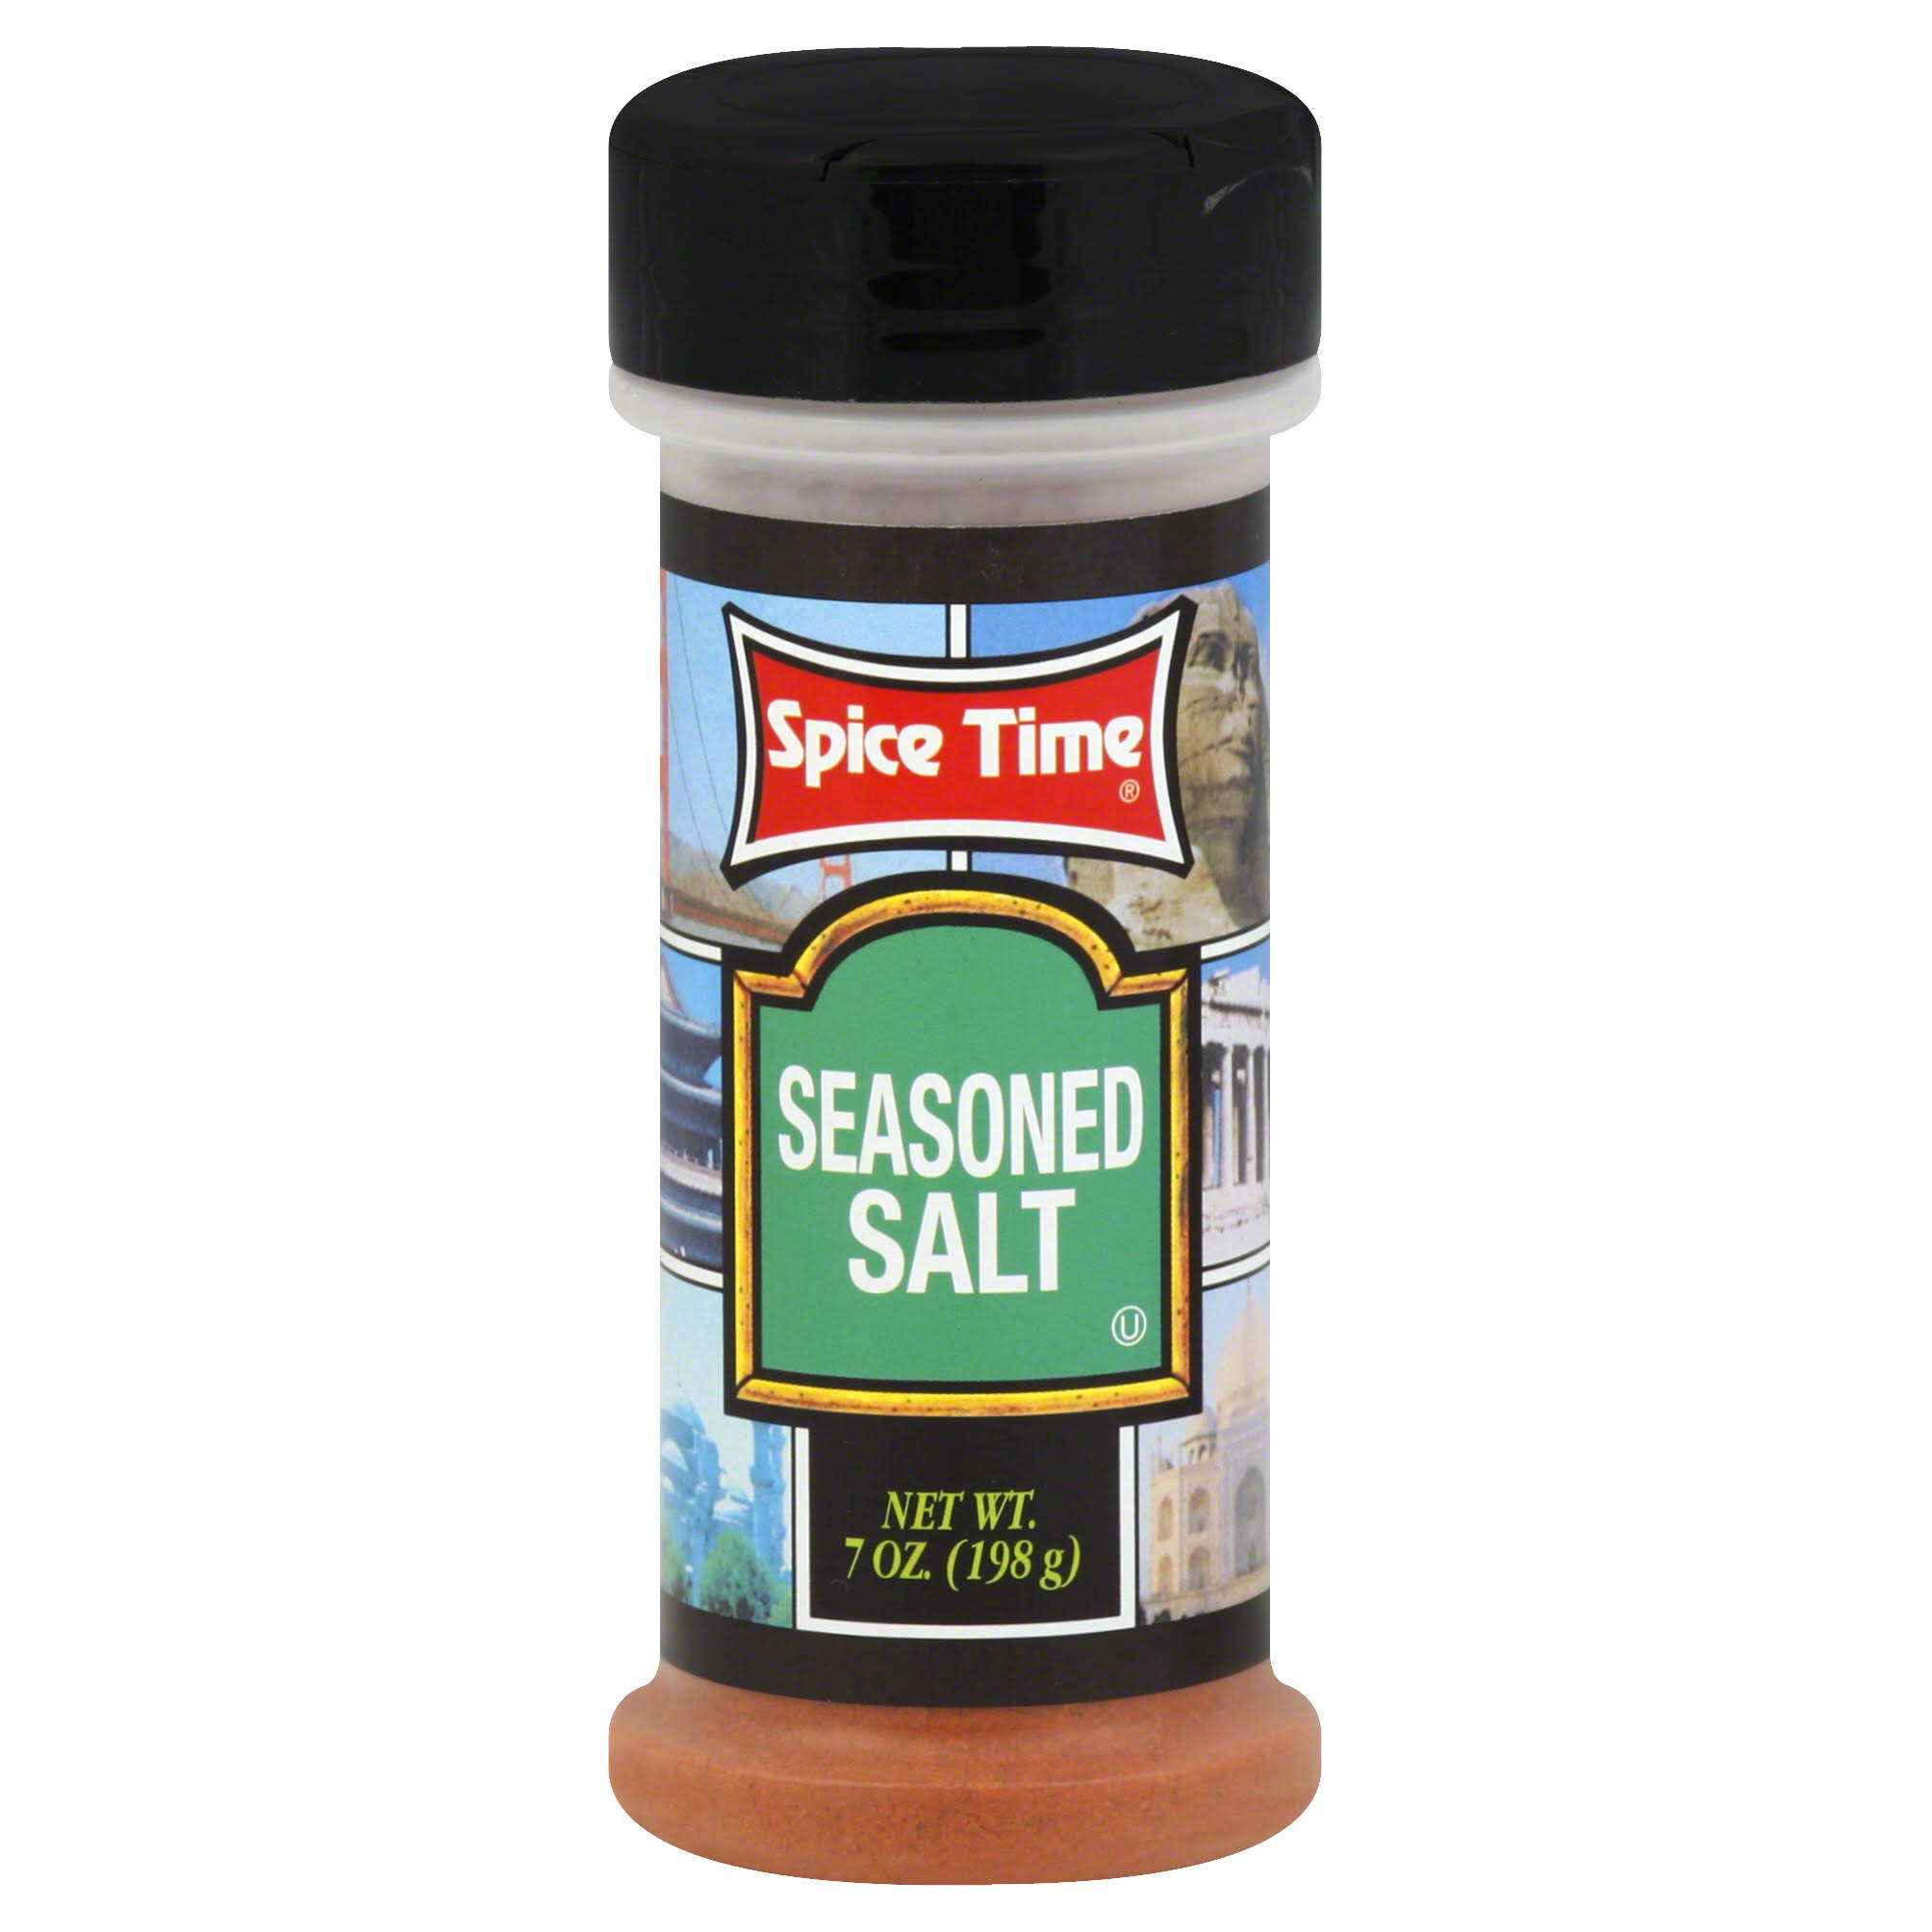 Spice Time Seasoned Salt - 7 oz